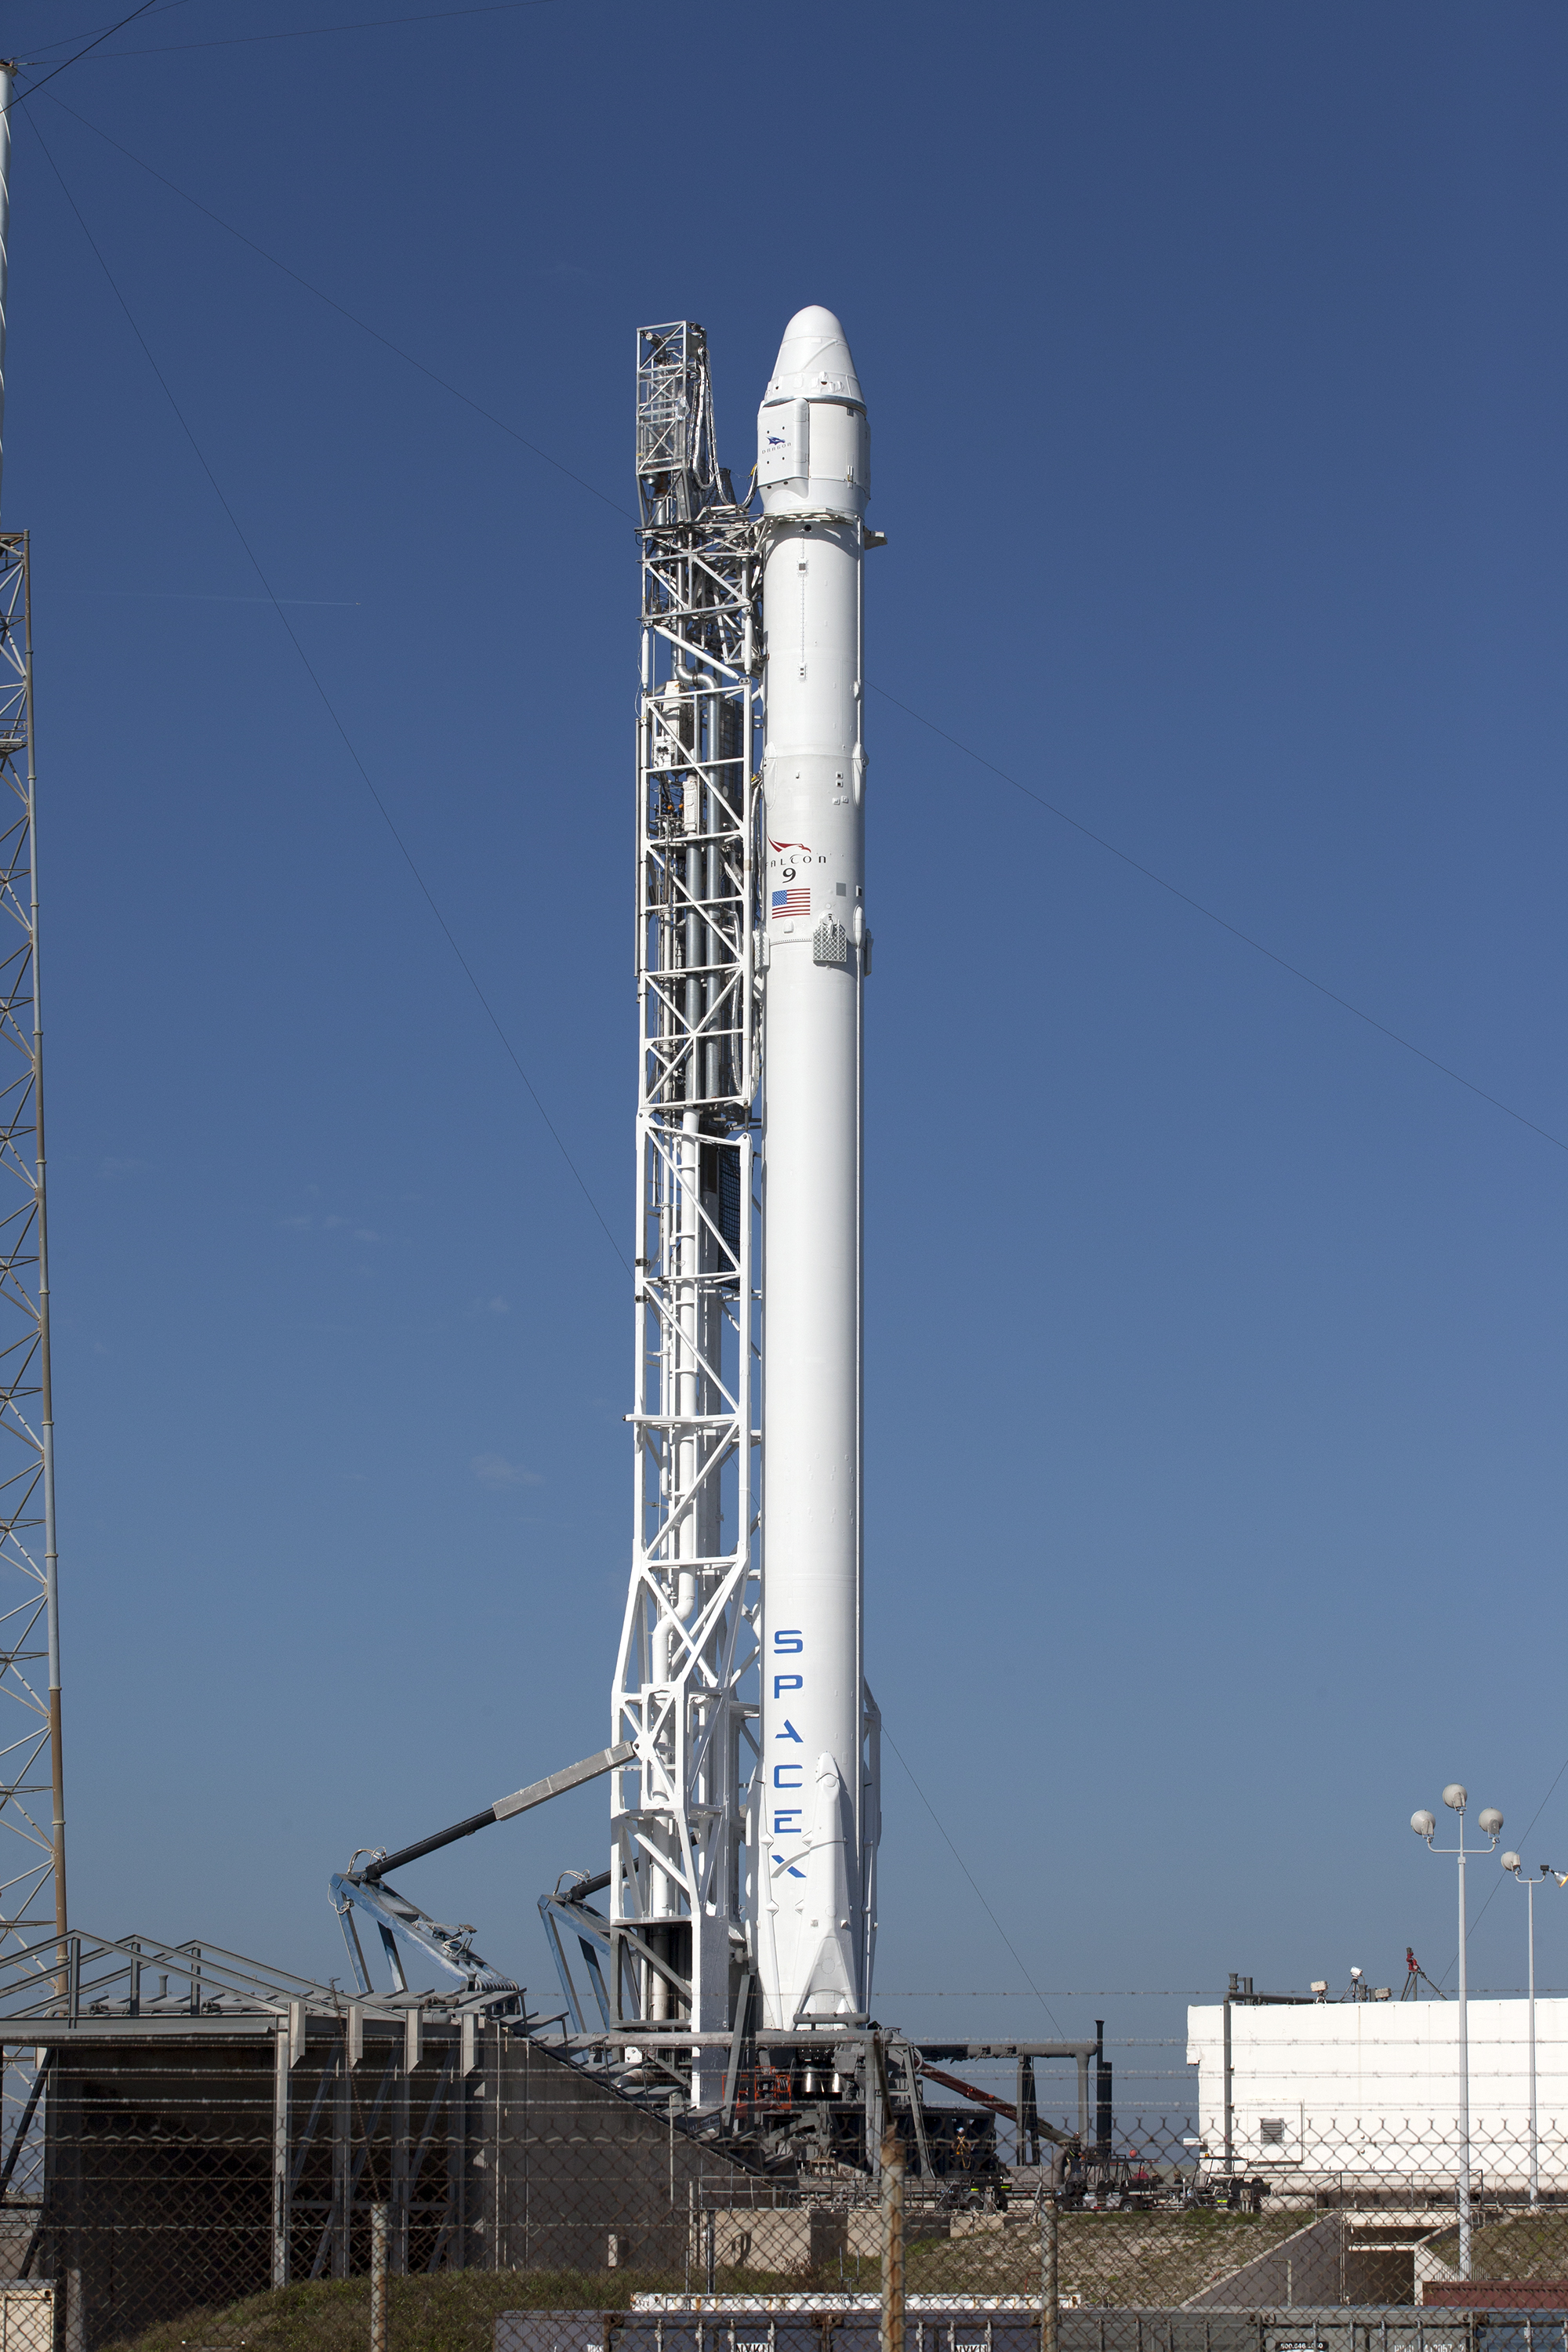 spacex falcon 9 rocket model - photo #37